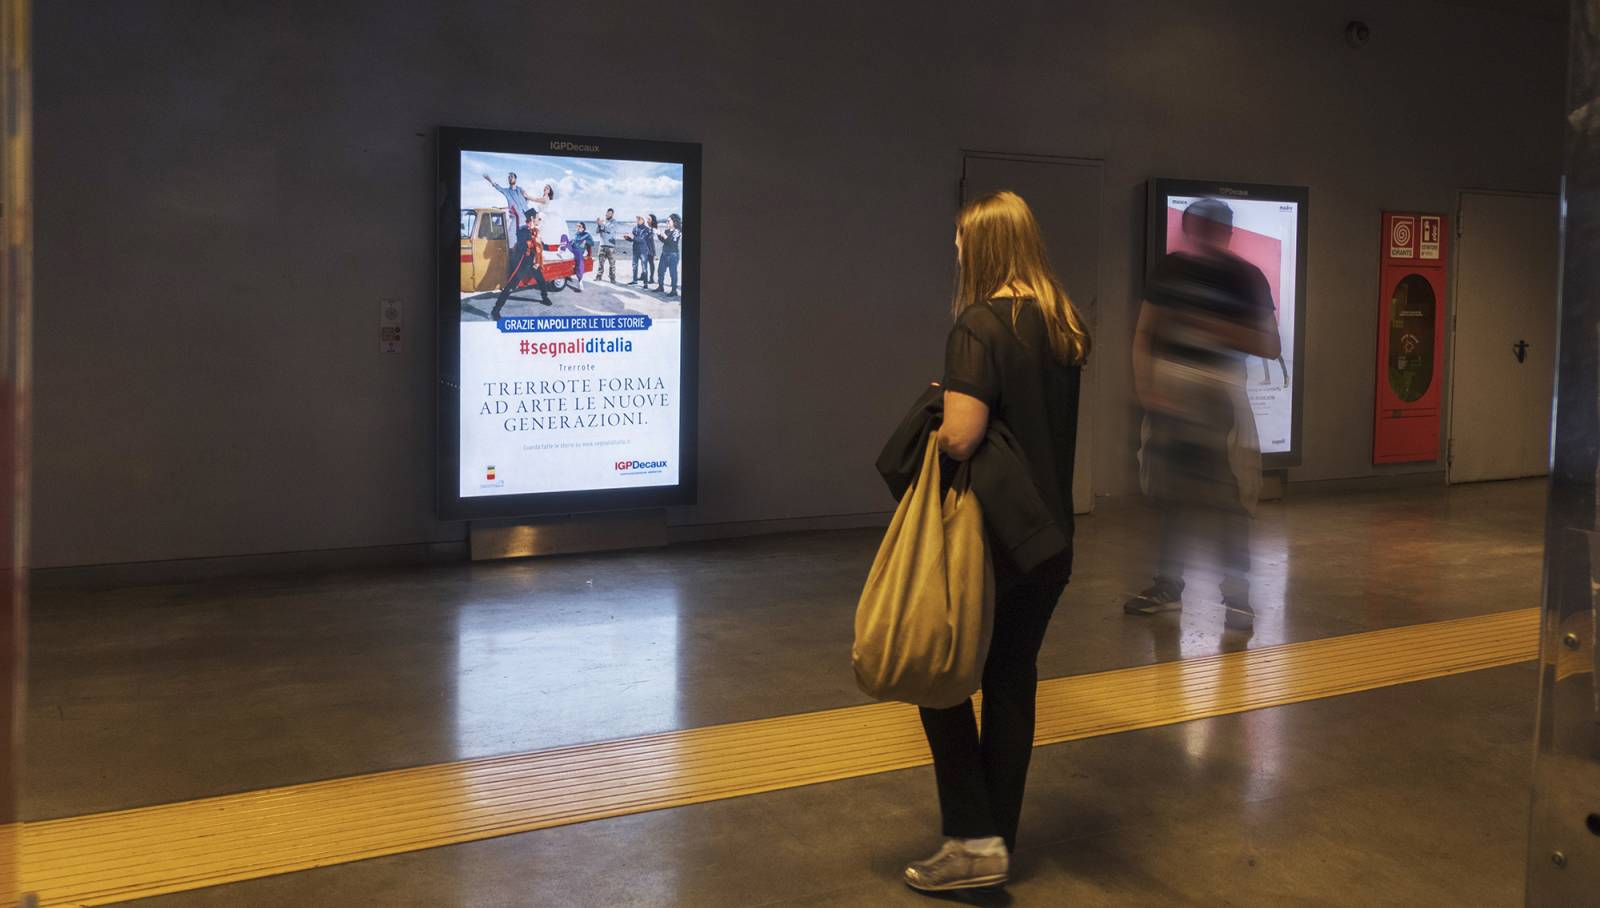 underground OOH advertising IGPDecaux in Naples for Segnali d'Italia